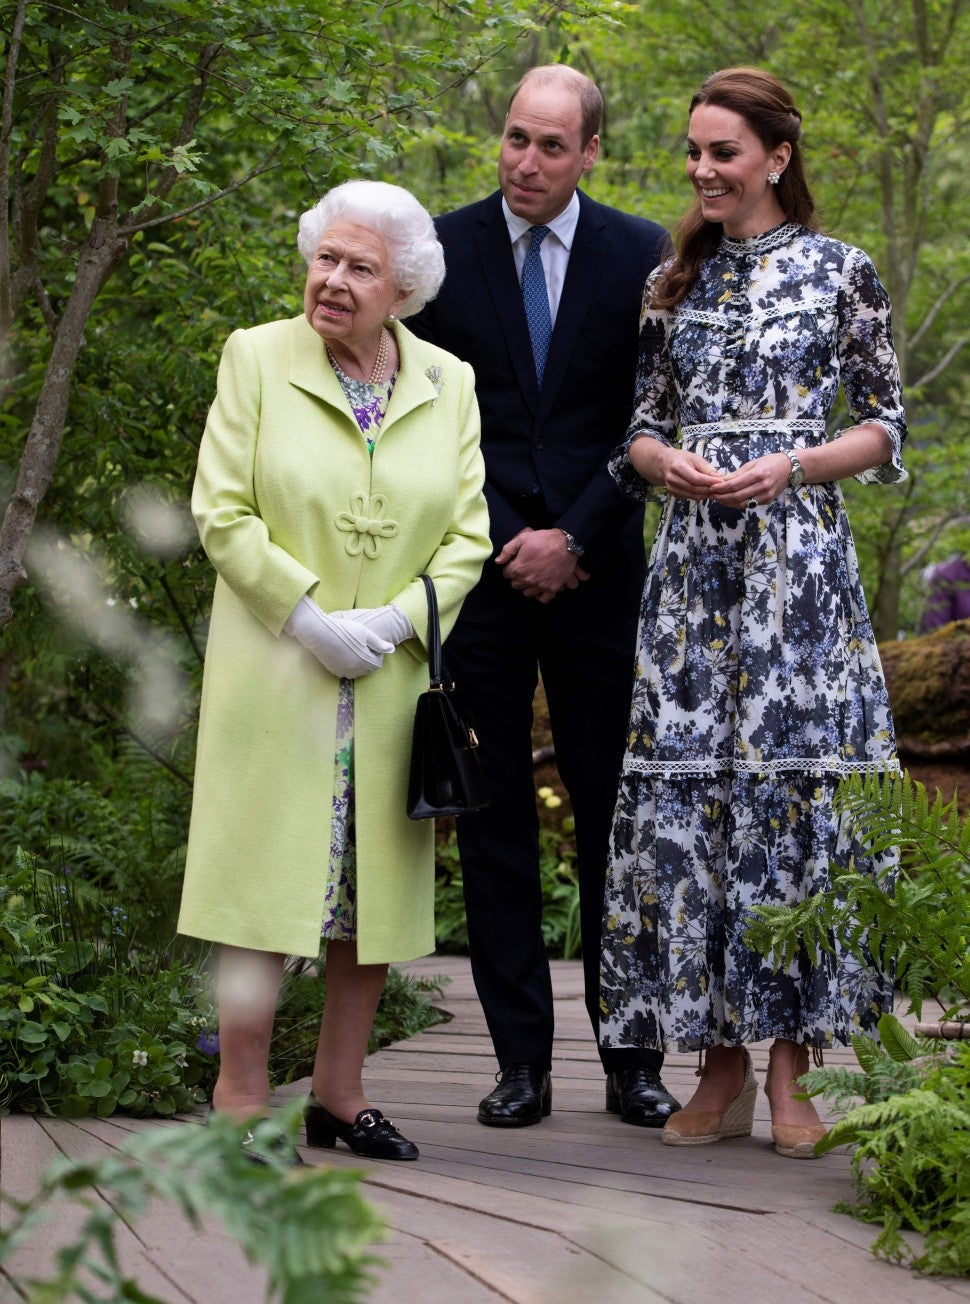 Kate Middleton, Queen Elizabeth II and Prince William at the 'Back to Nature Garden' that Middleton designed along with Andree Davies and Adam White, during their visit to the 2019 RHS Chelsea Flower Show in London on May 20, 2019.